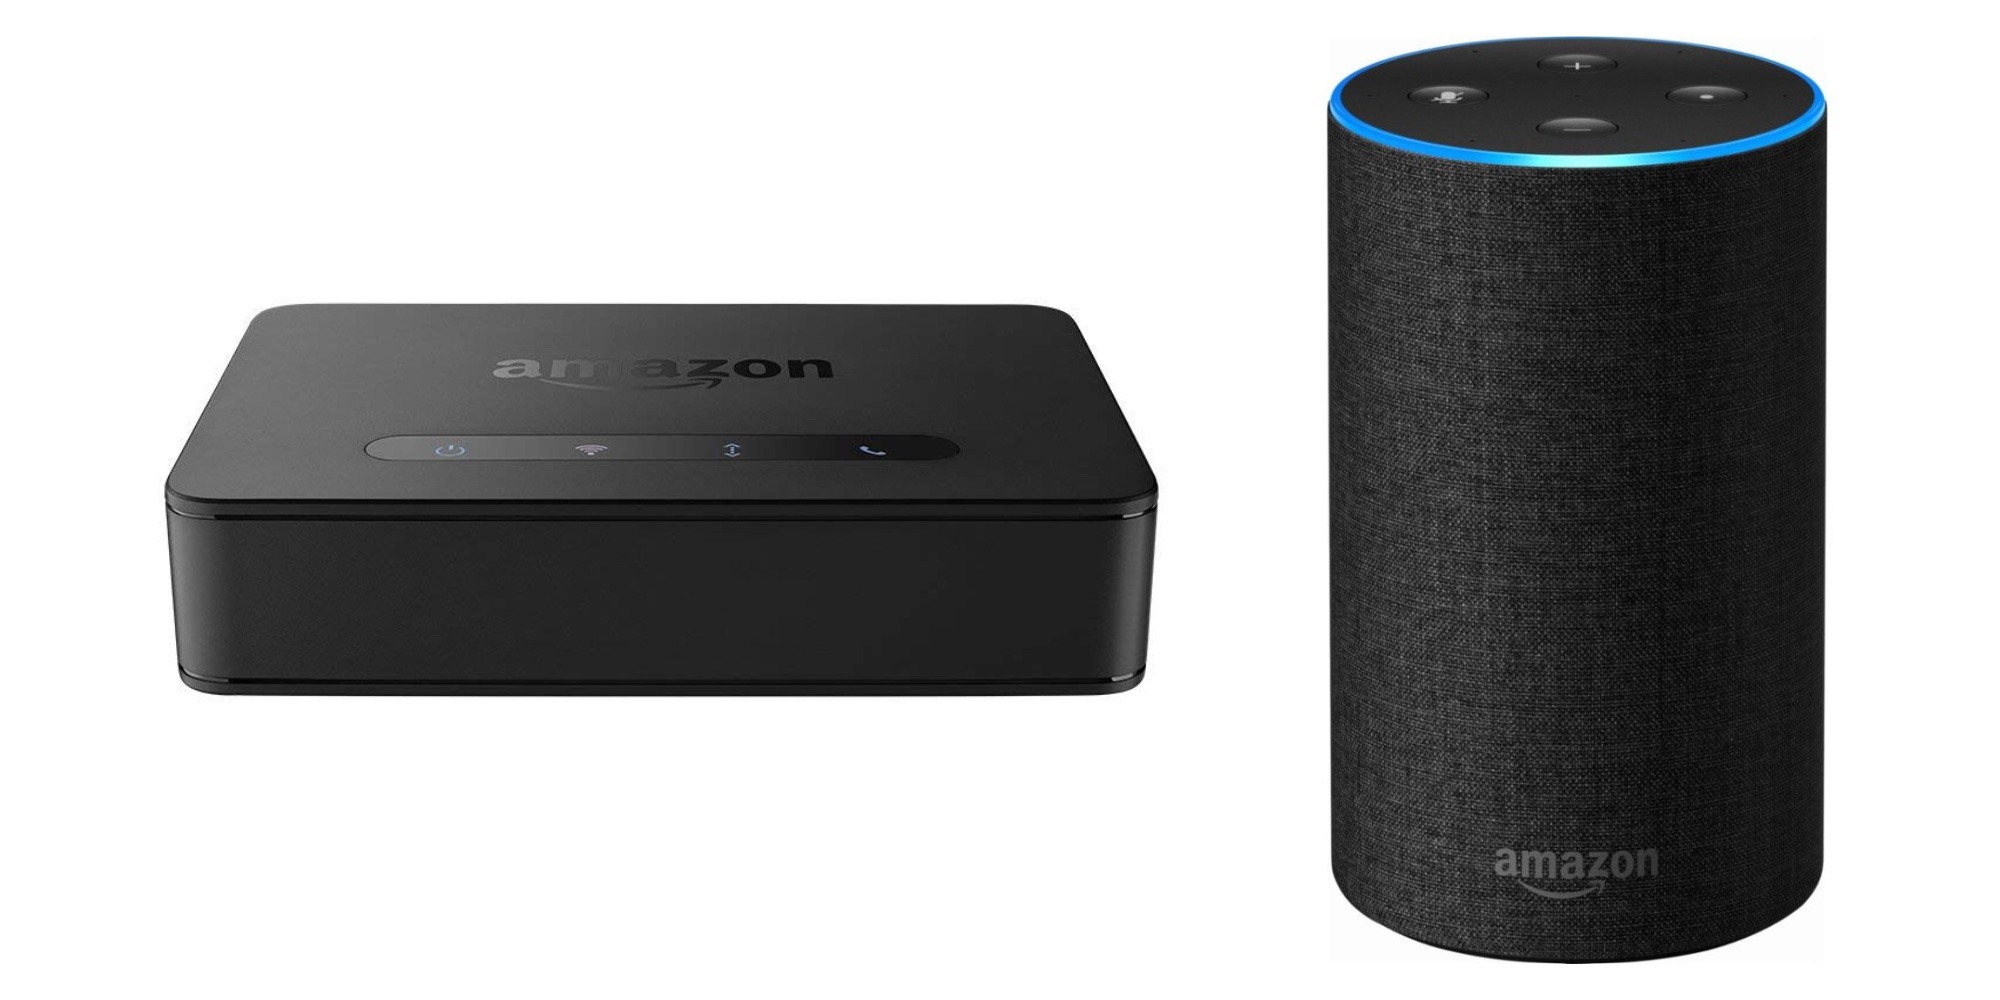 Amazon Echo Connect drops to new low at $13 (Cert. Refurb, Orig. $35) + 2nd Gen. Echo from $50